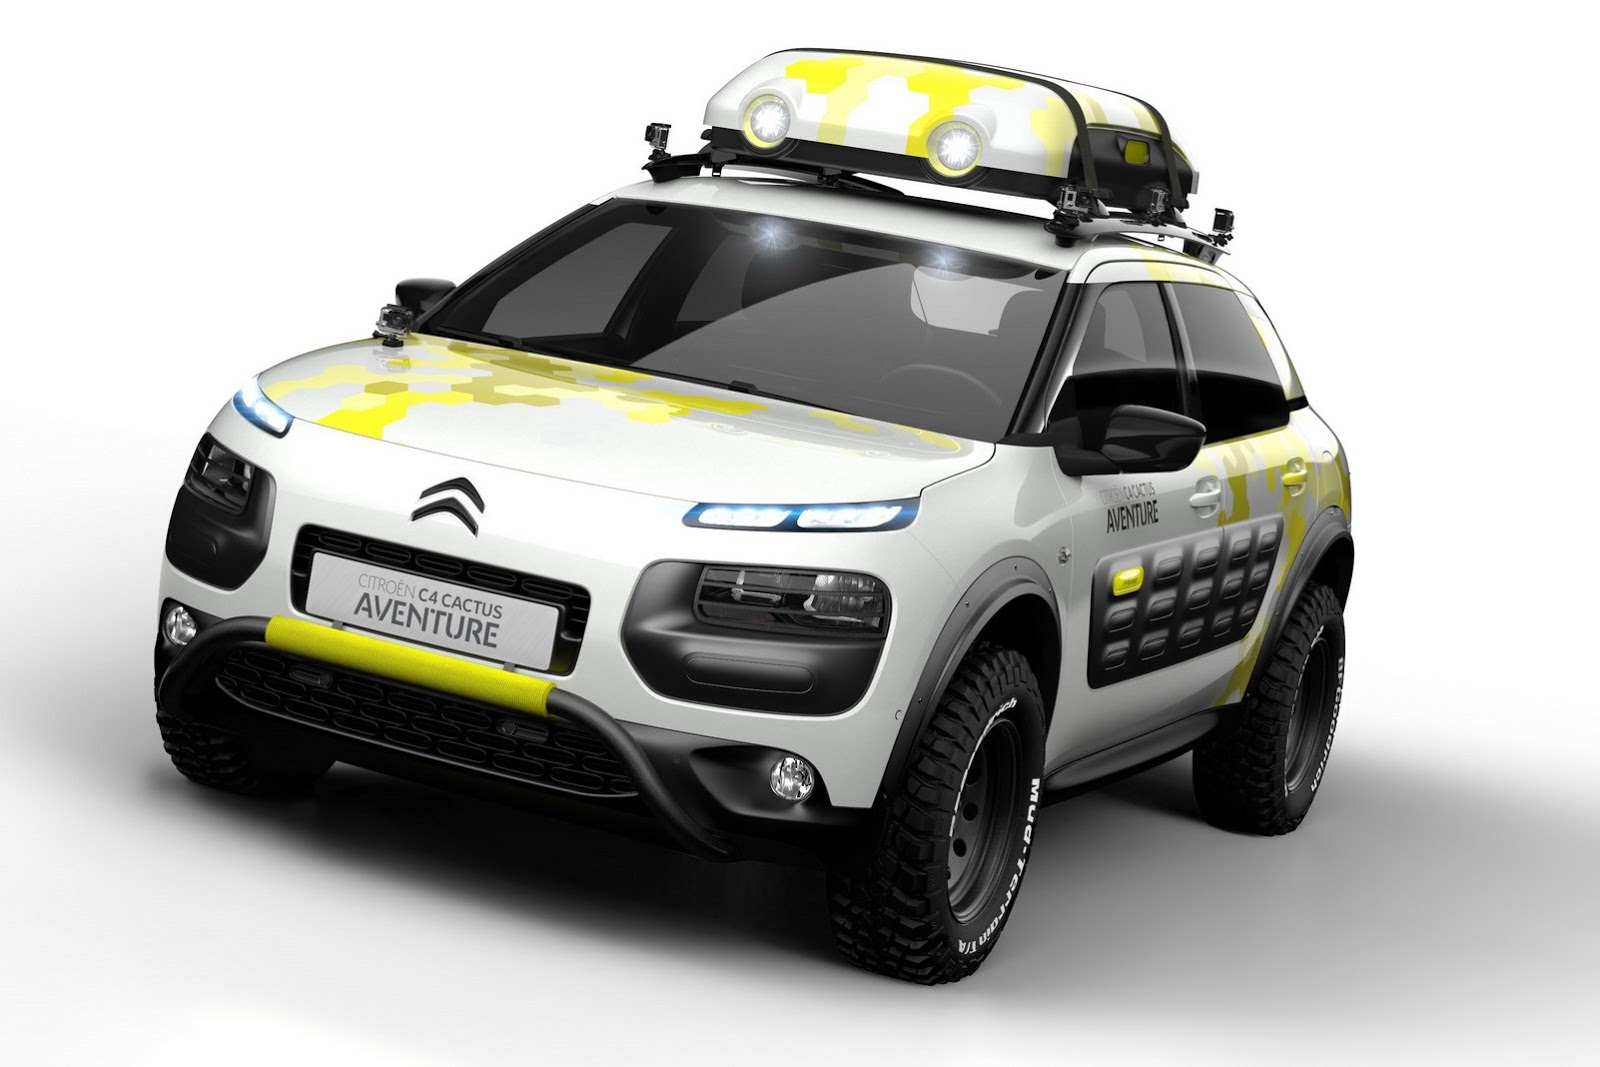 citroen c4 cactus adventure concept revealed autoevolution. Black Bedroom Furniture Sets. Home Design Ideas